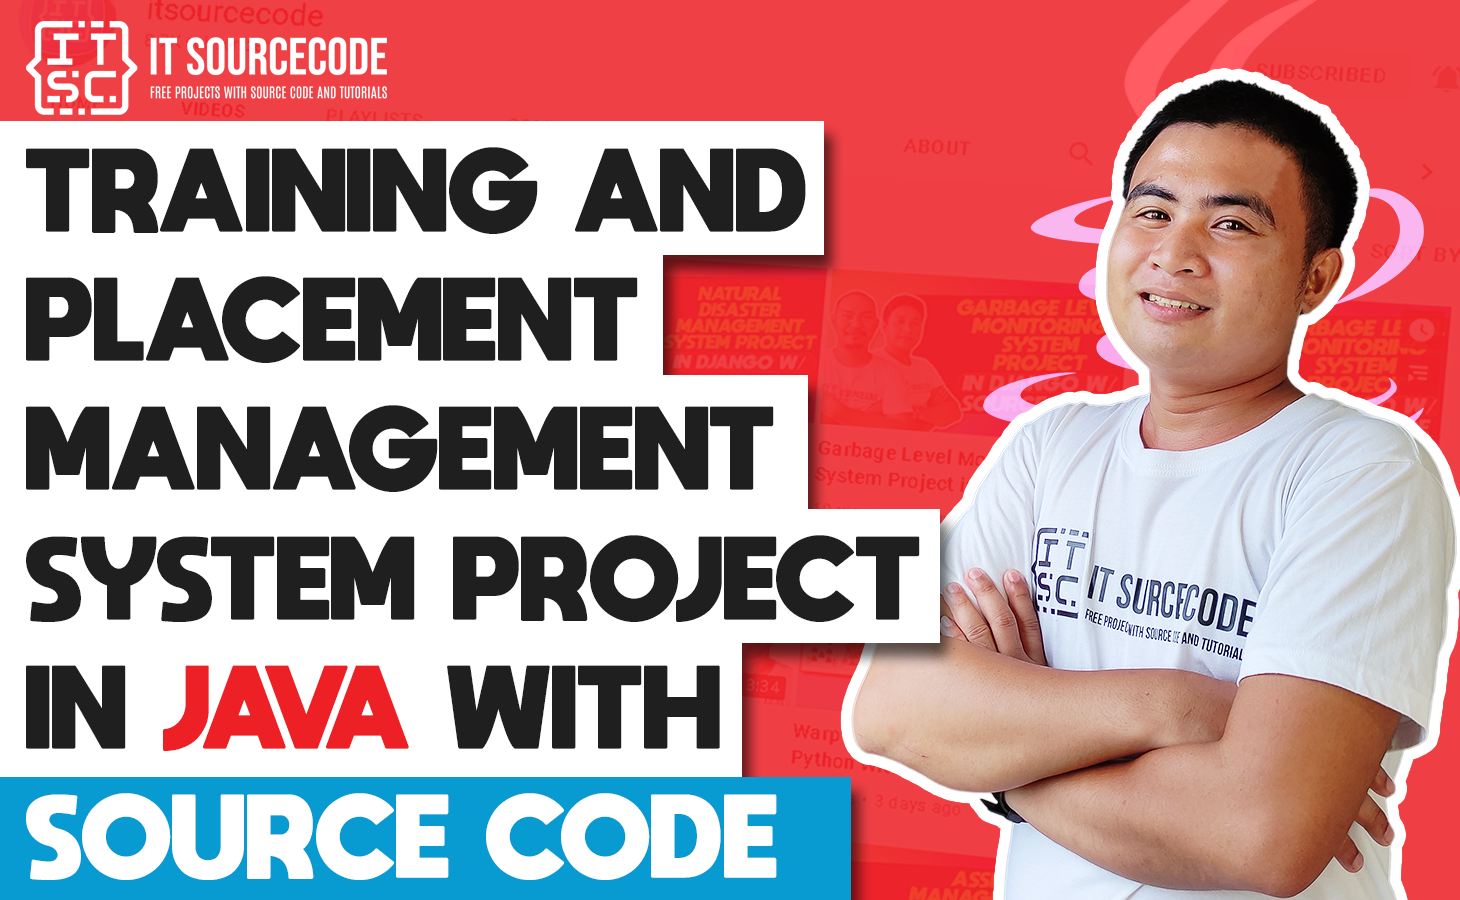 Training and Placement Management System Project In Java With Source Code